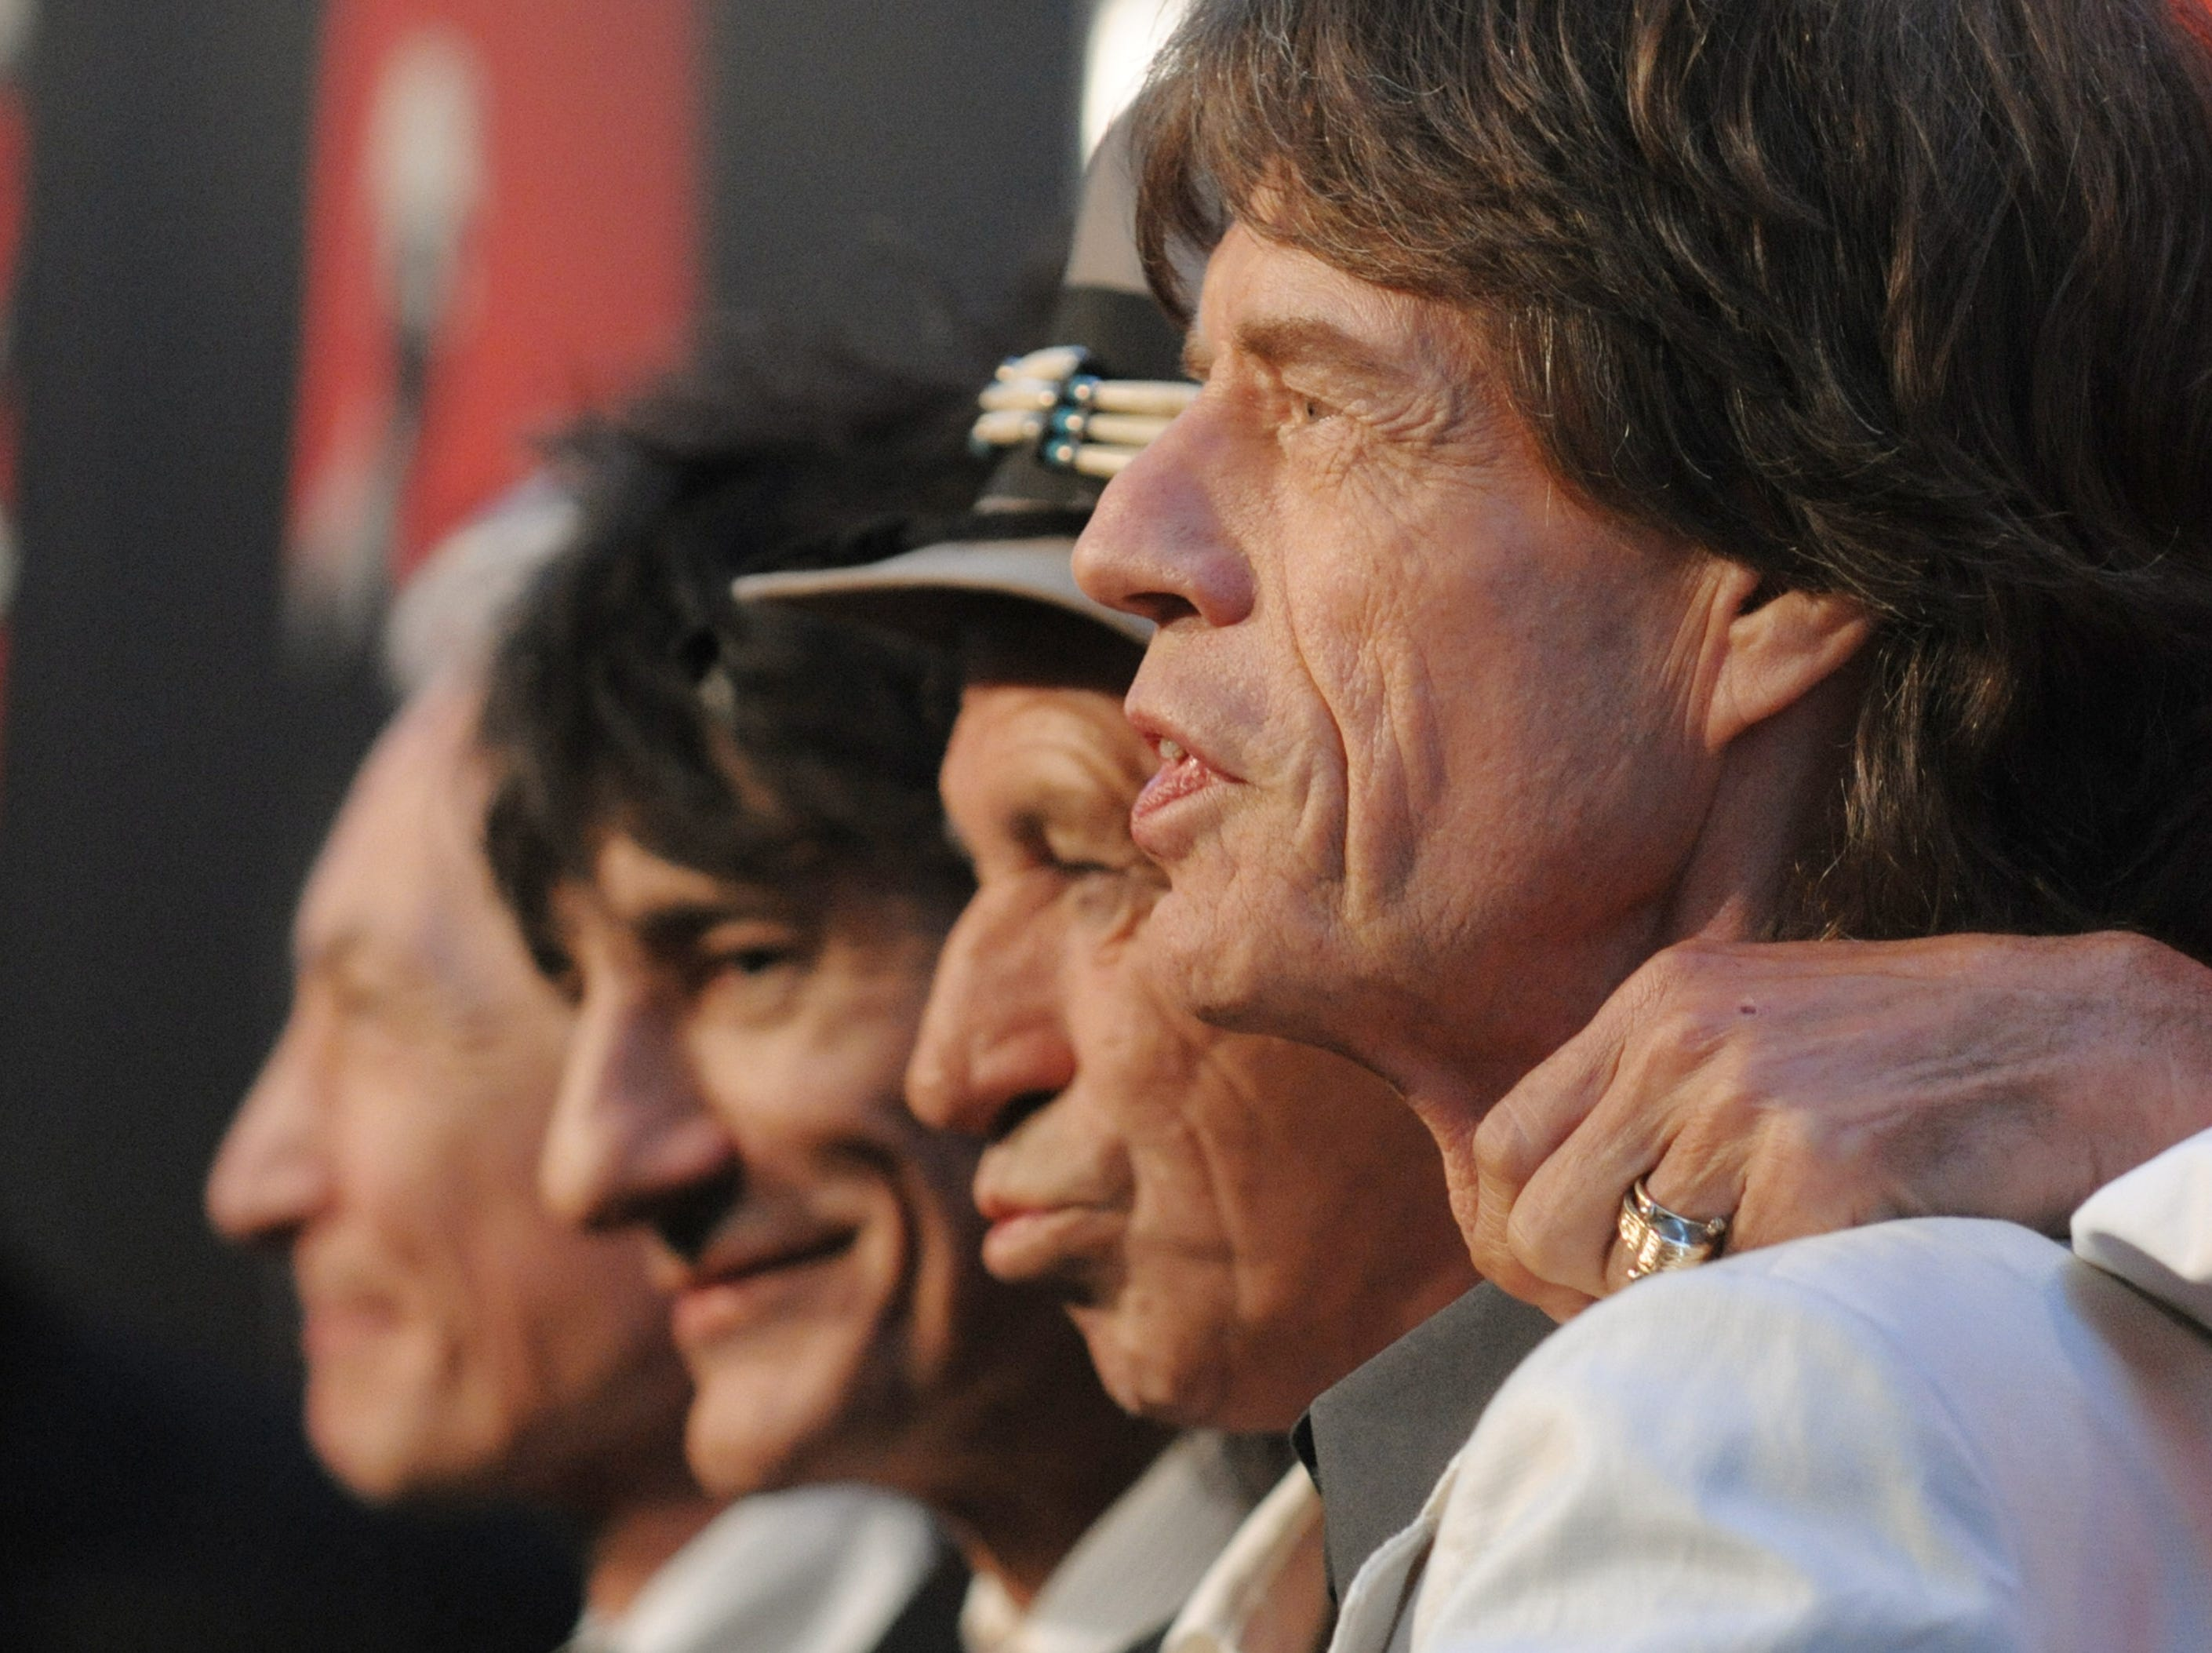 "From left, Charlie Watts, Ronnie Wood, Keith Richards and Mick Jagger of The Rolling Stones attend the premiere of ""Shine A Light"" featuring The Rolling Stones, at the Ziegfeld Theater, Sunday, March 30, 2008, in New York. (AP Photo/Evan Agostini) ORG XMIT: NYEA126"